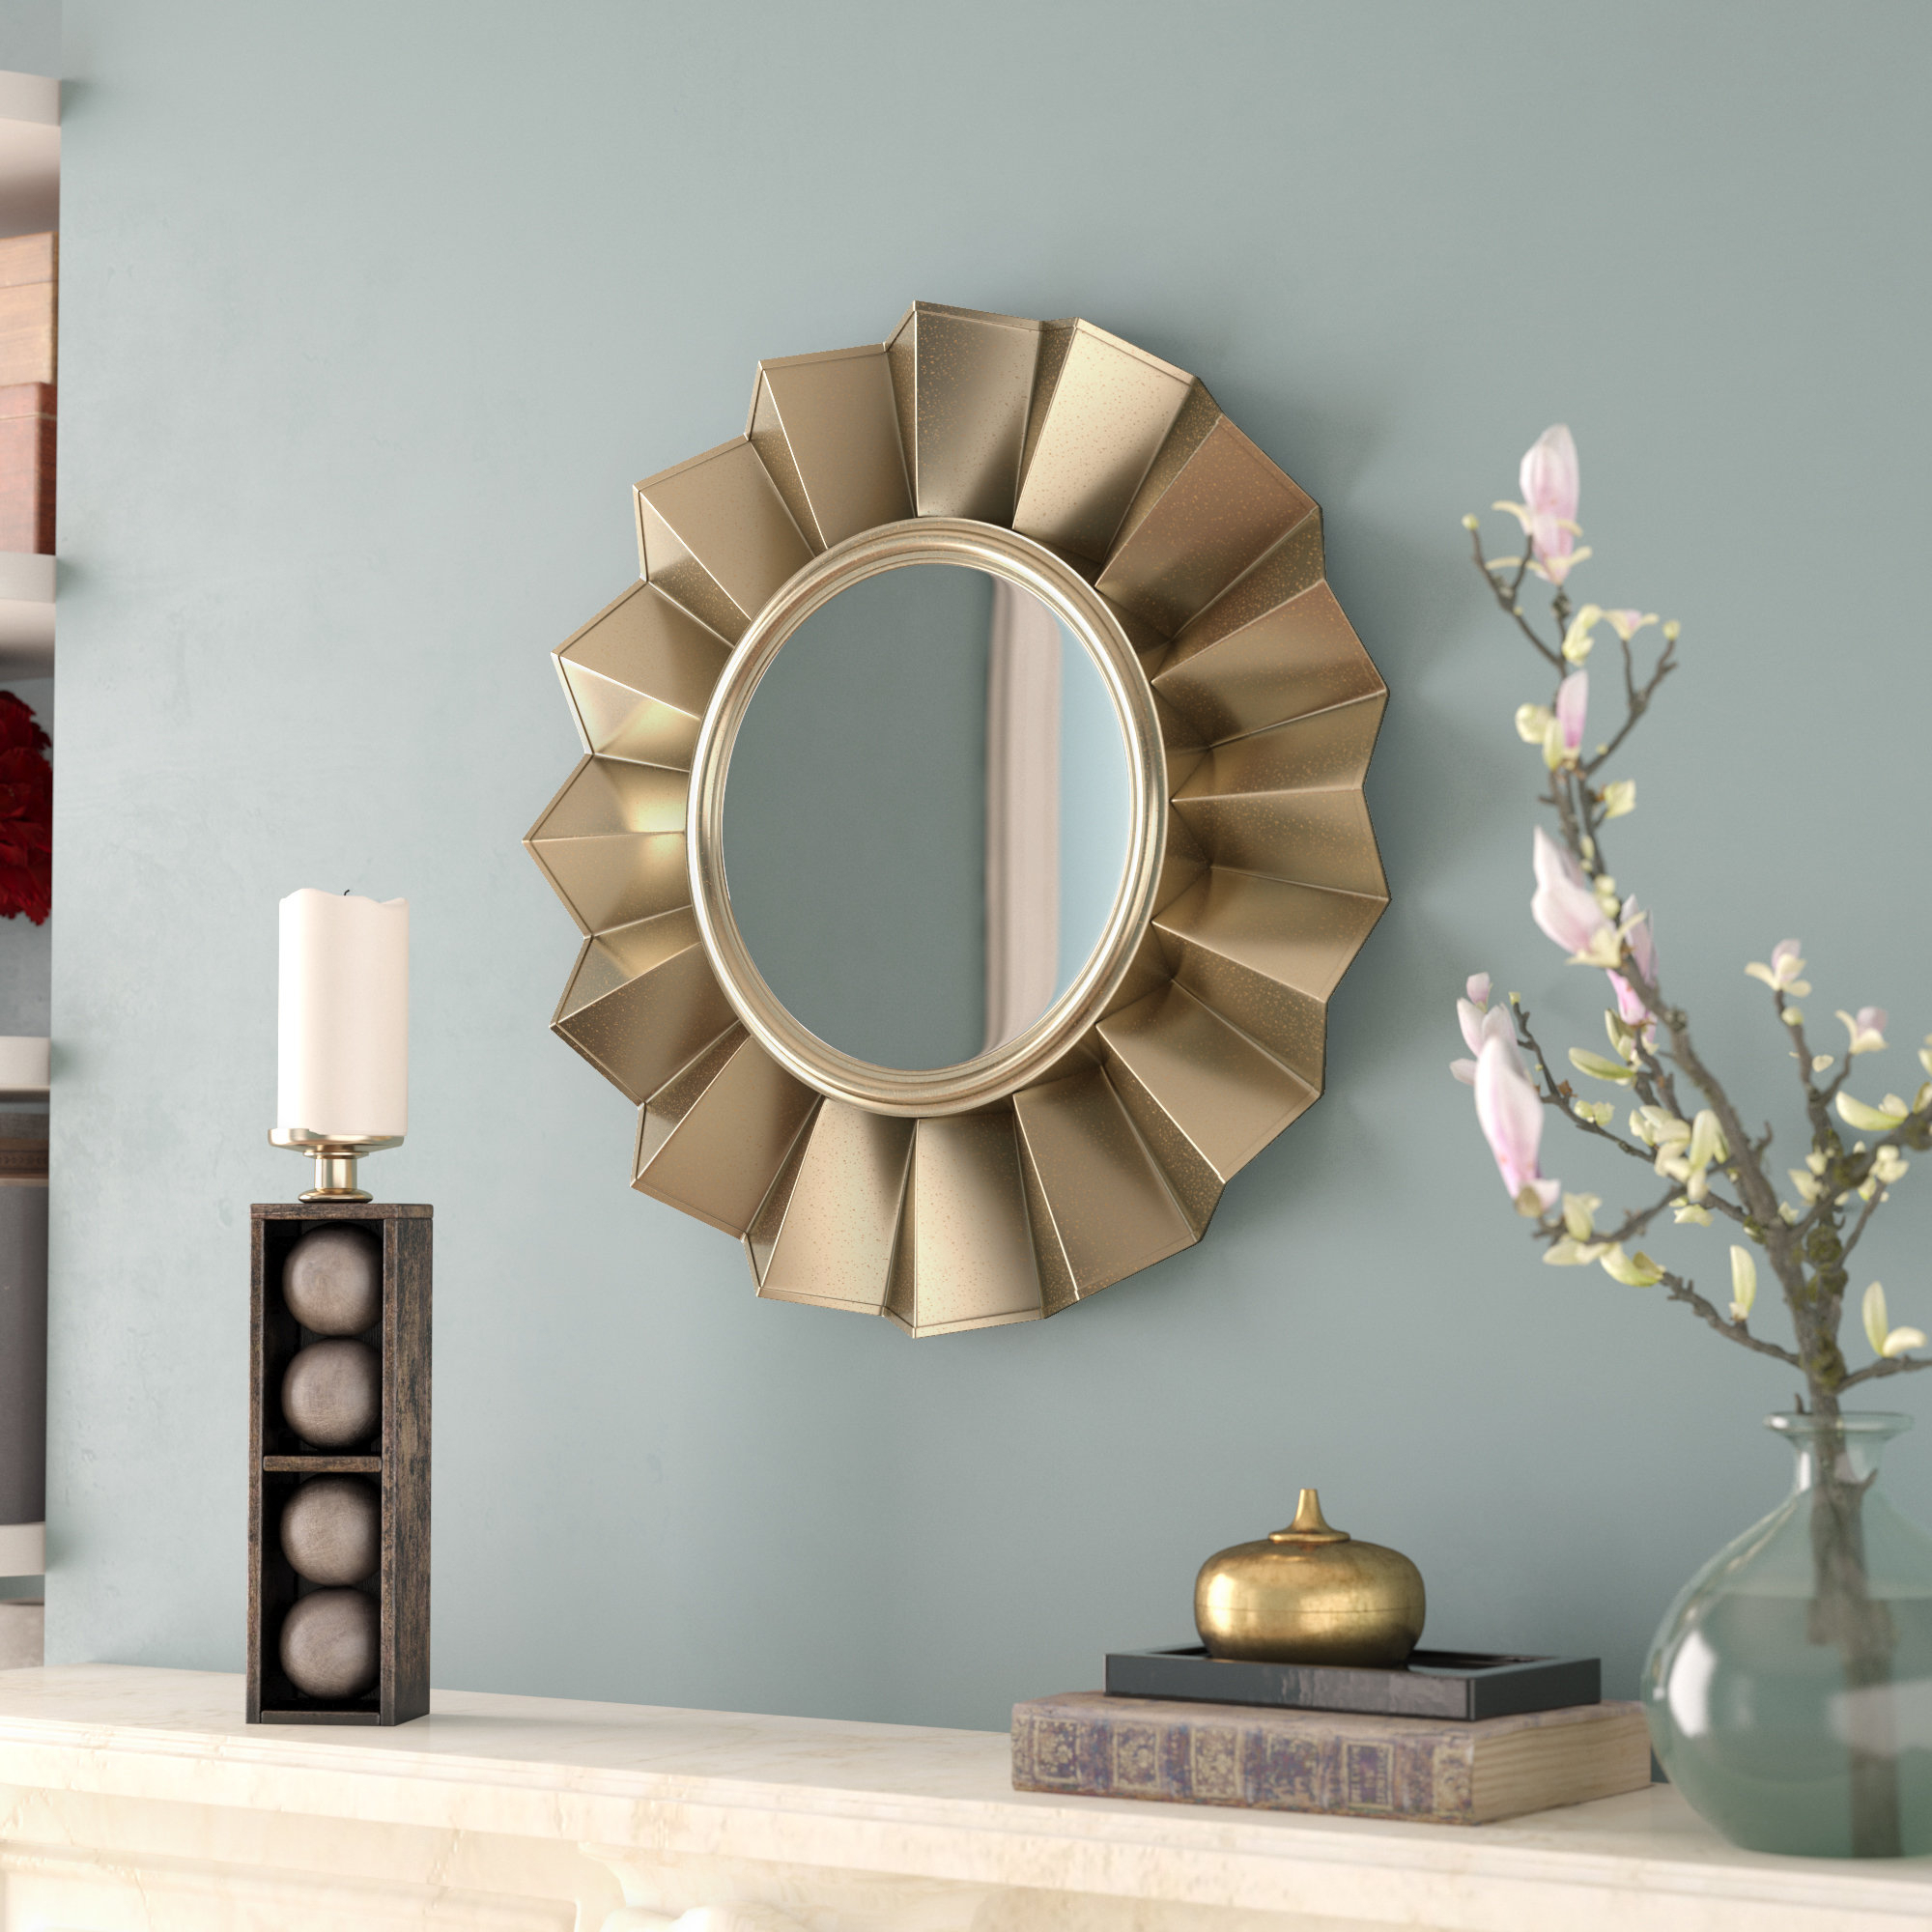 Vertical Round Wall Mirror With Karn Vertical Round Resin Wall Mirrors (Image 16 of 20)